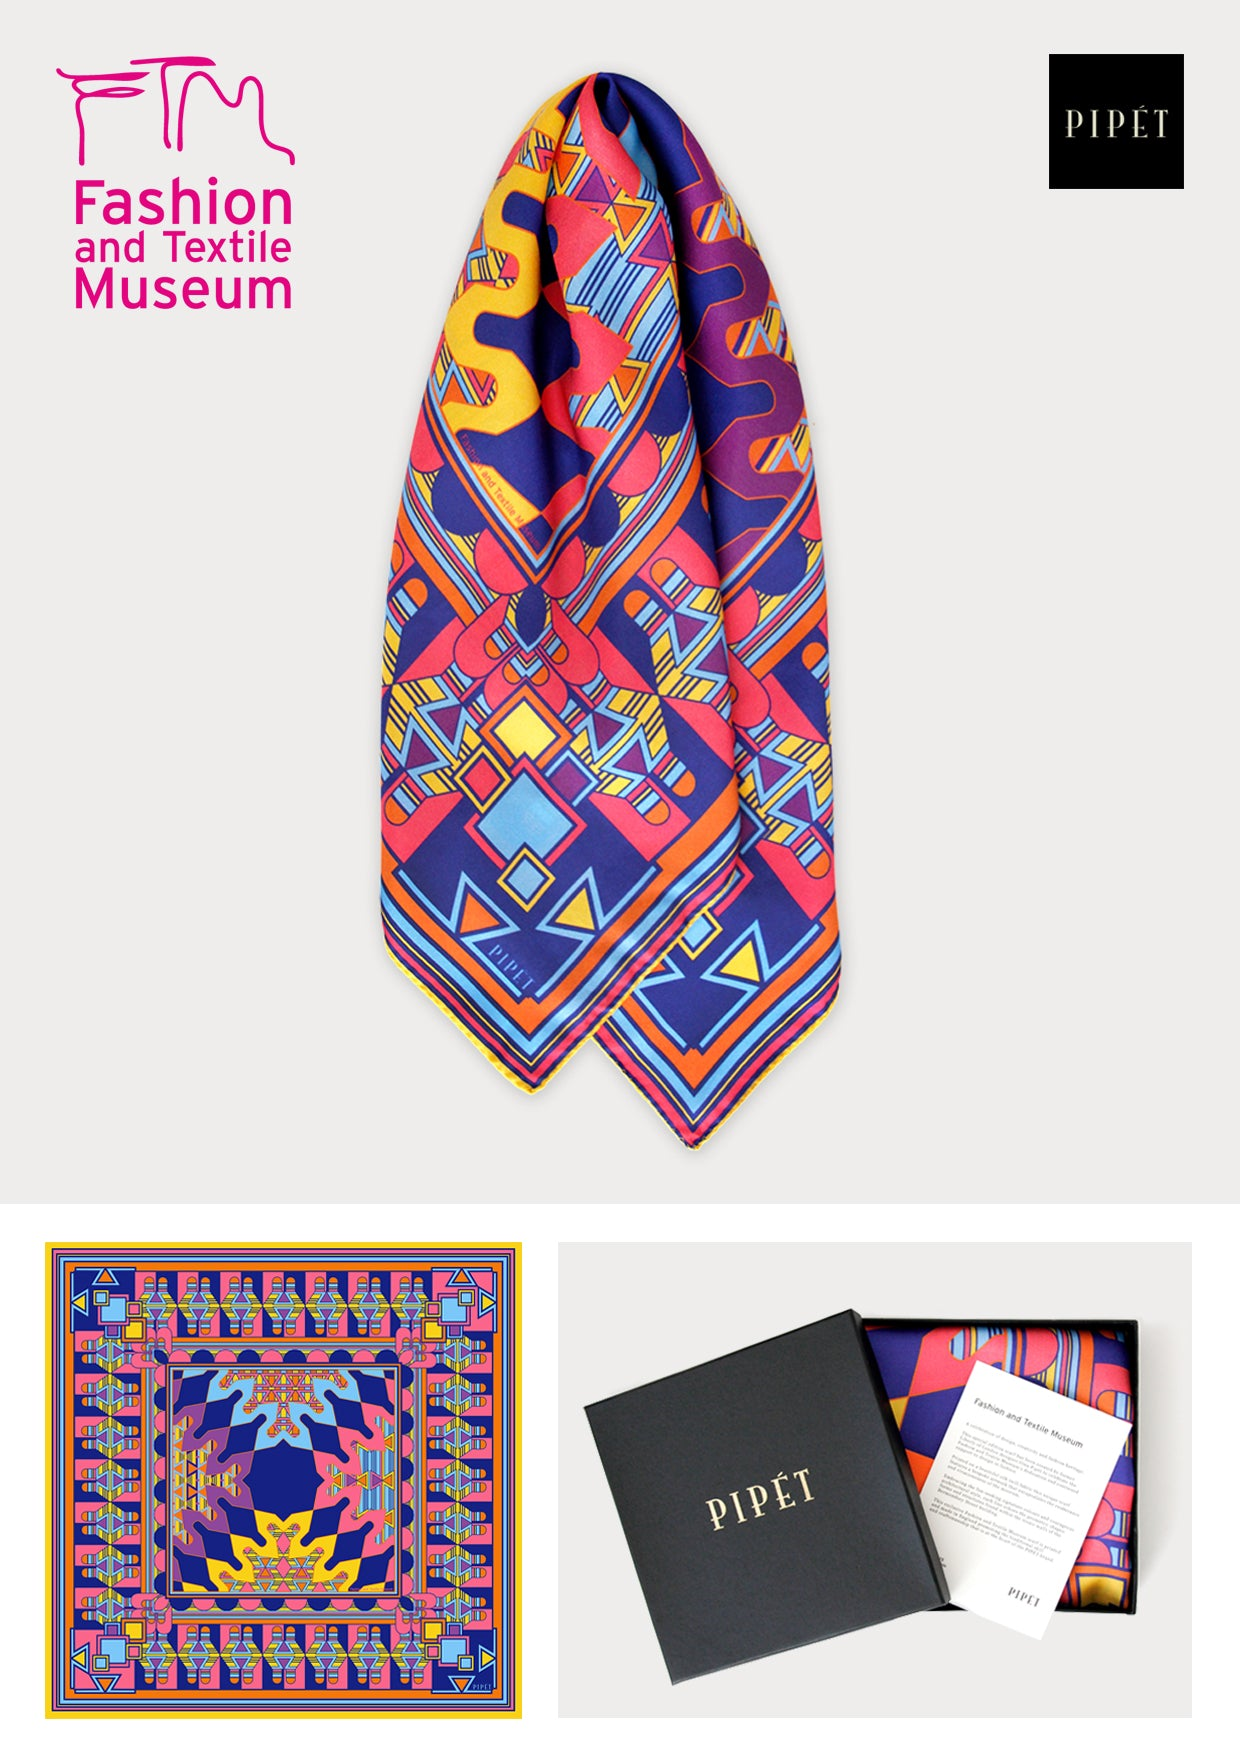 Fashion and Textile Museum Pipet Scarf Commission